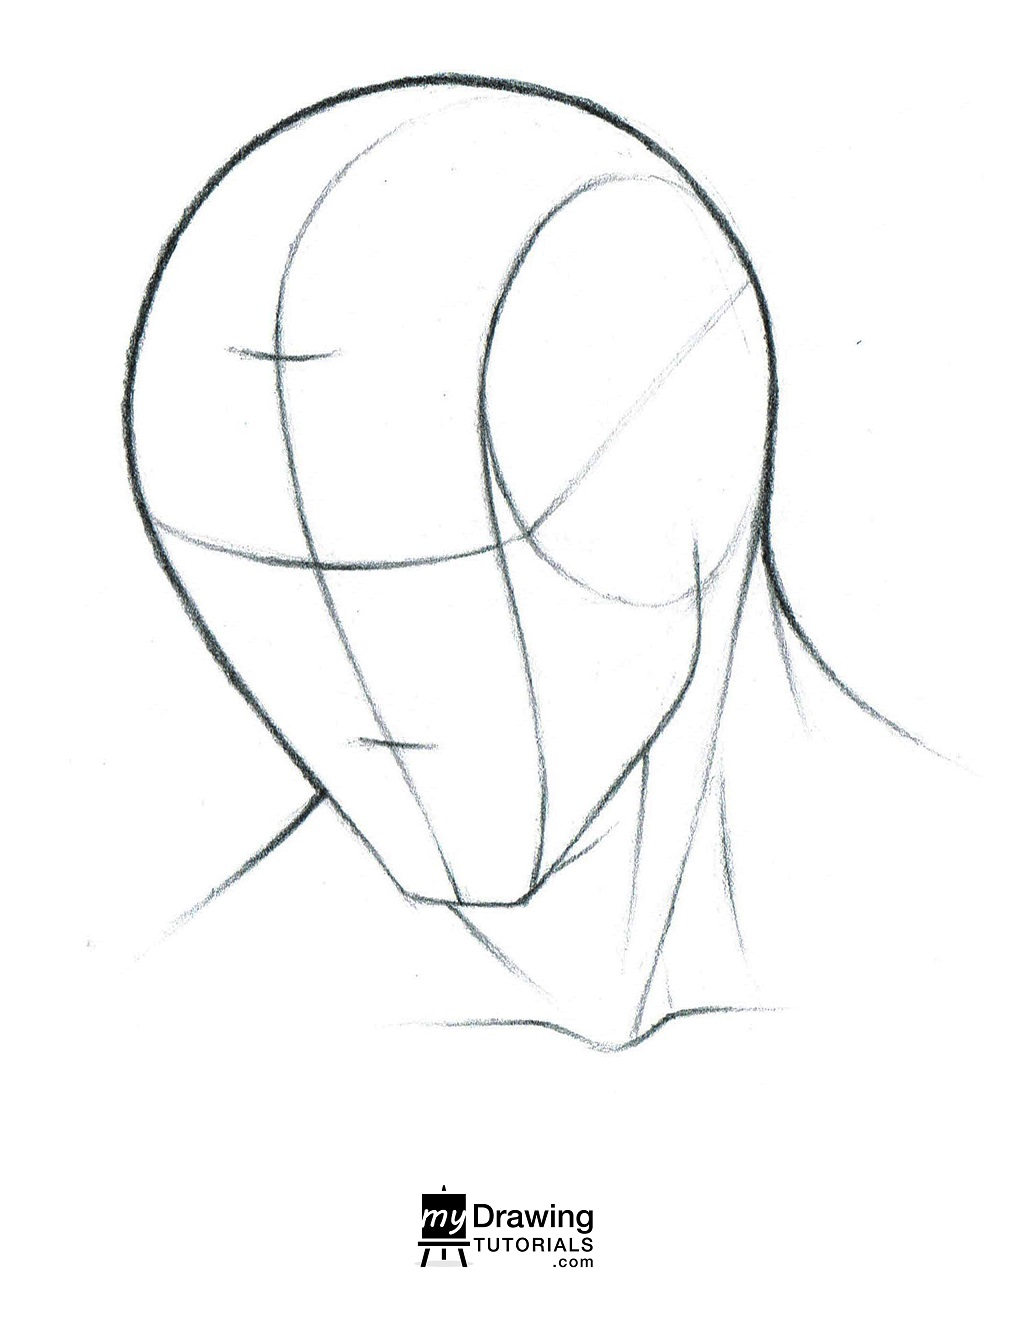 Head Looking Down Reference : looking, reference, Course, Assets, Portrait, Fundamentals, Simple, Drawing, Tutorials